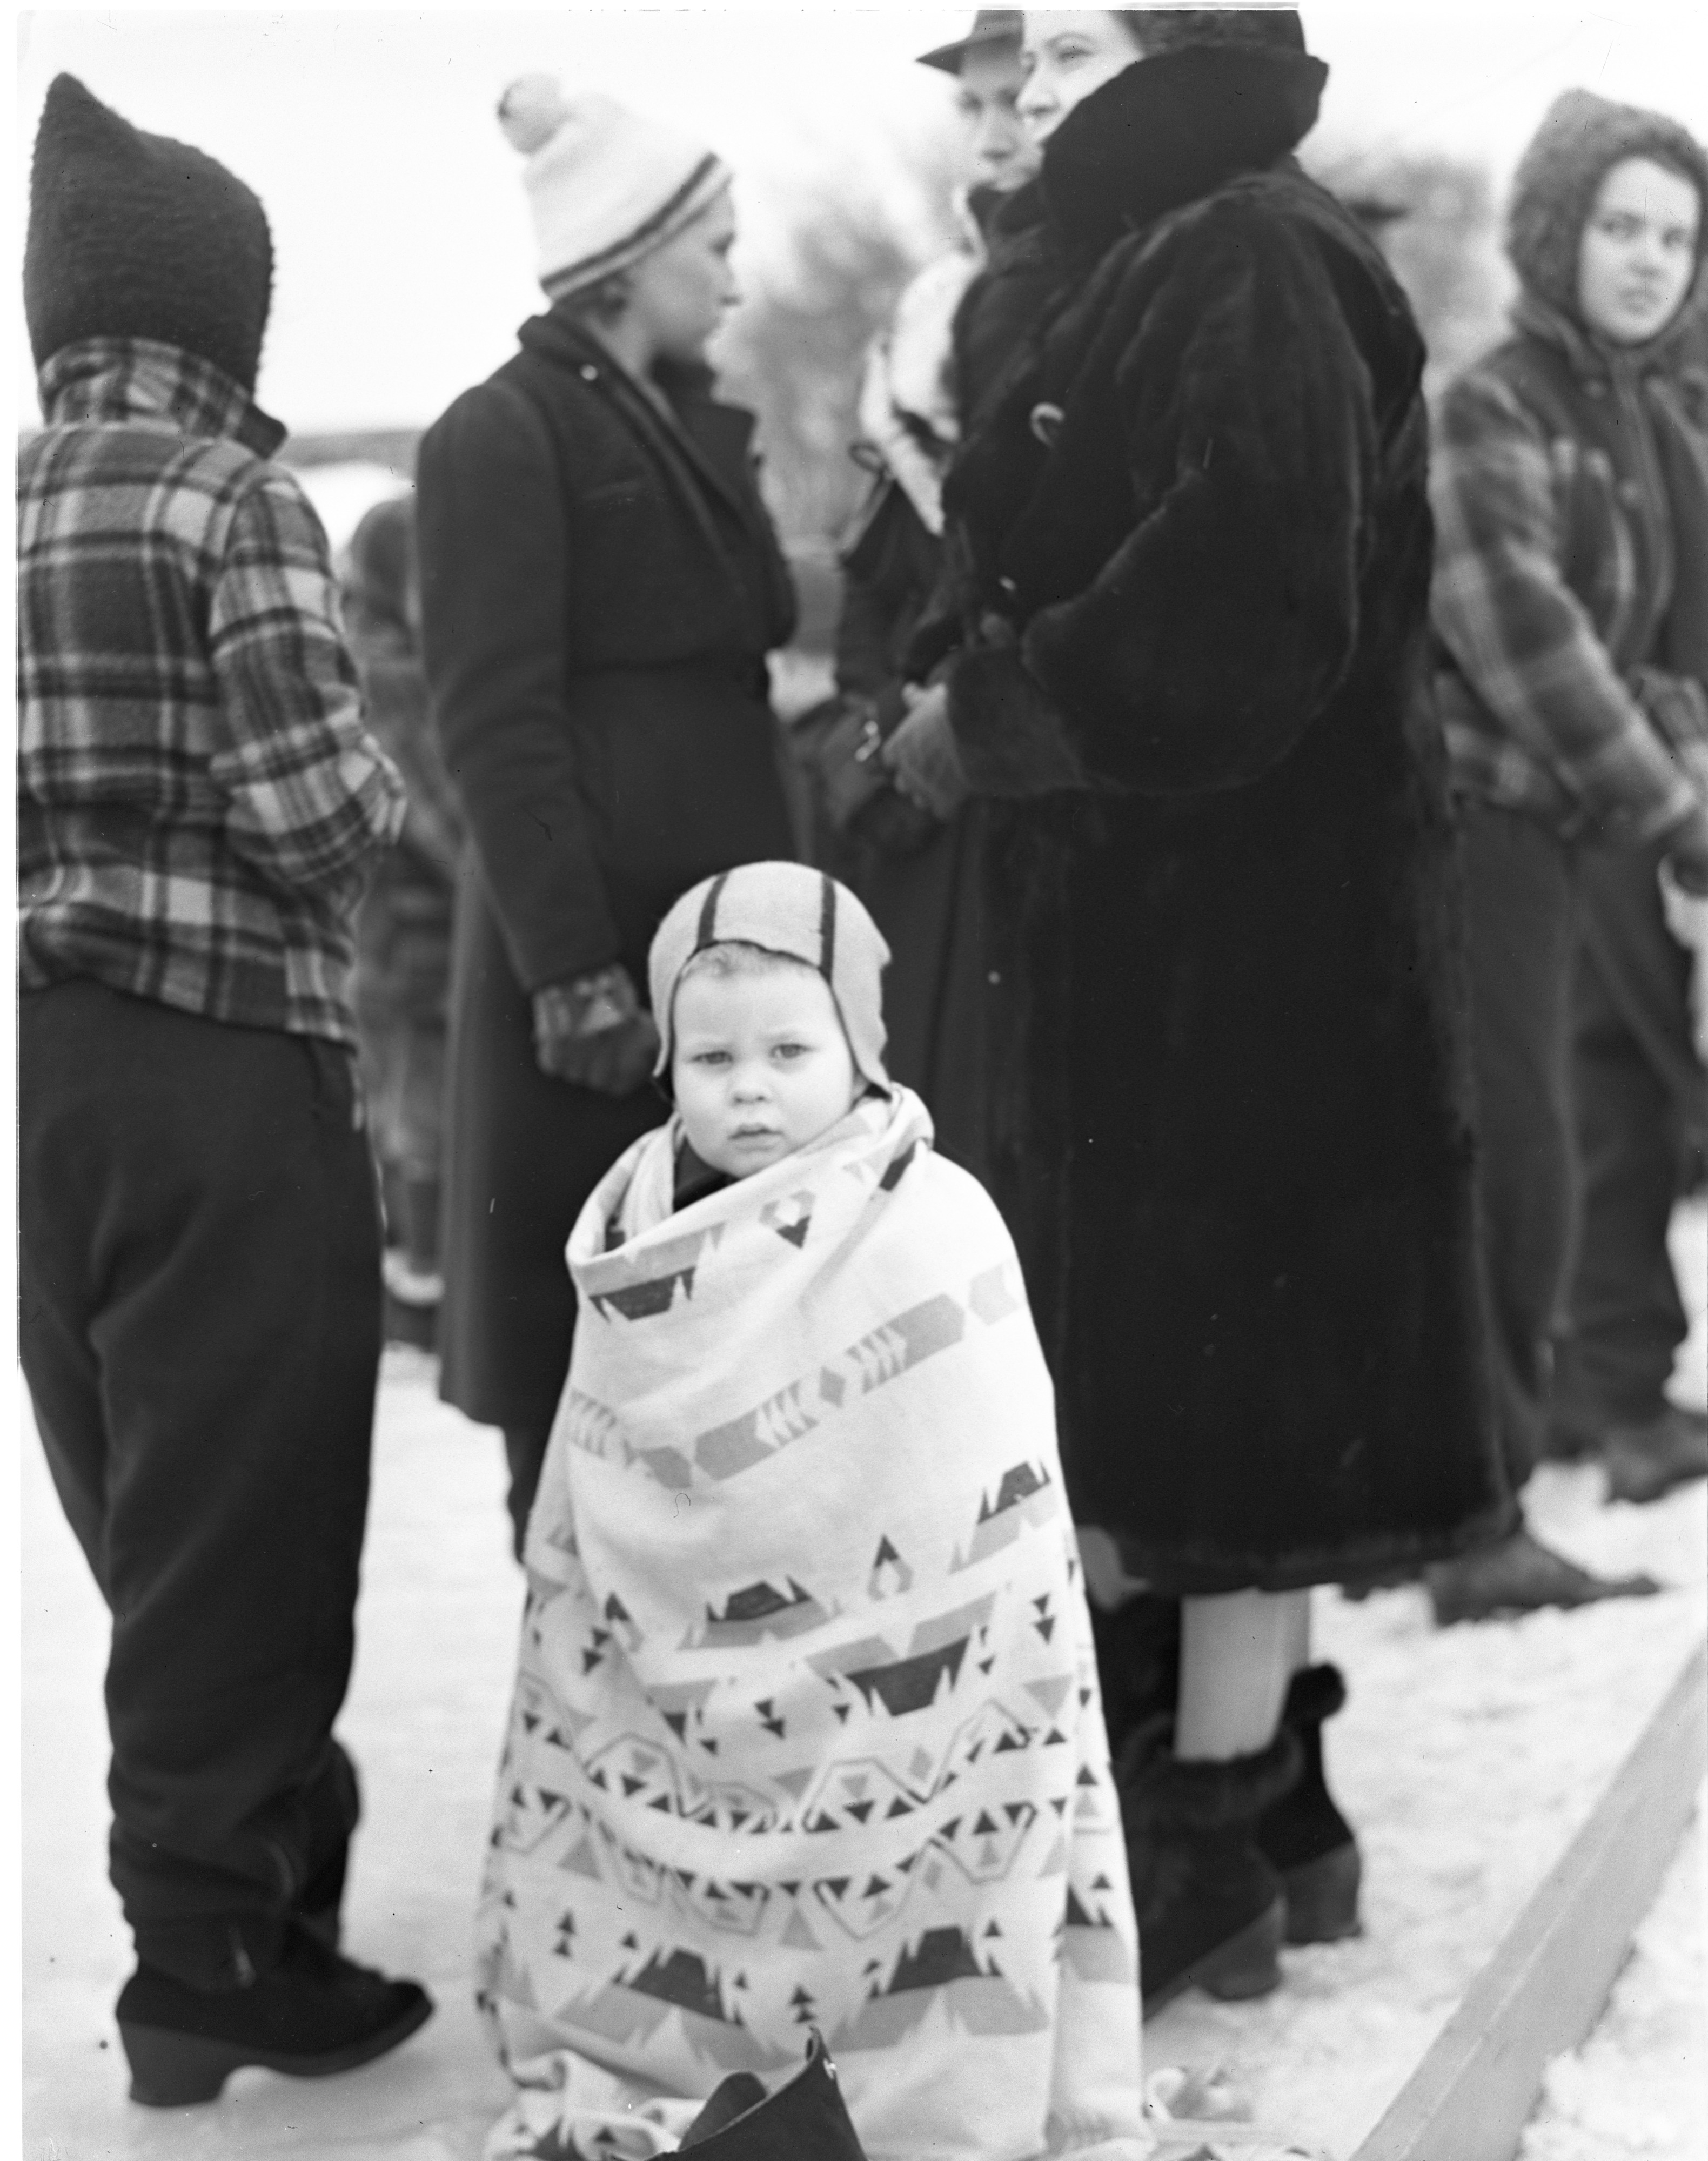 Young Spectator At The City Skating Carnival, January 1939 image